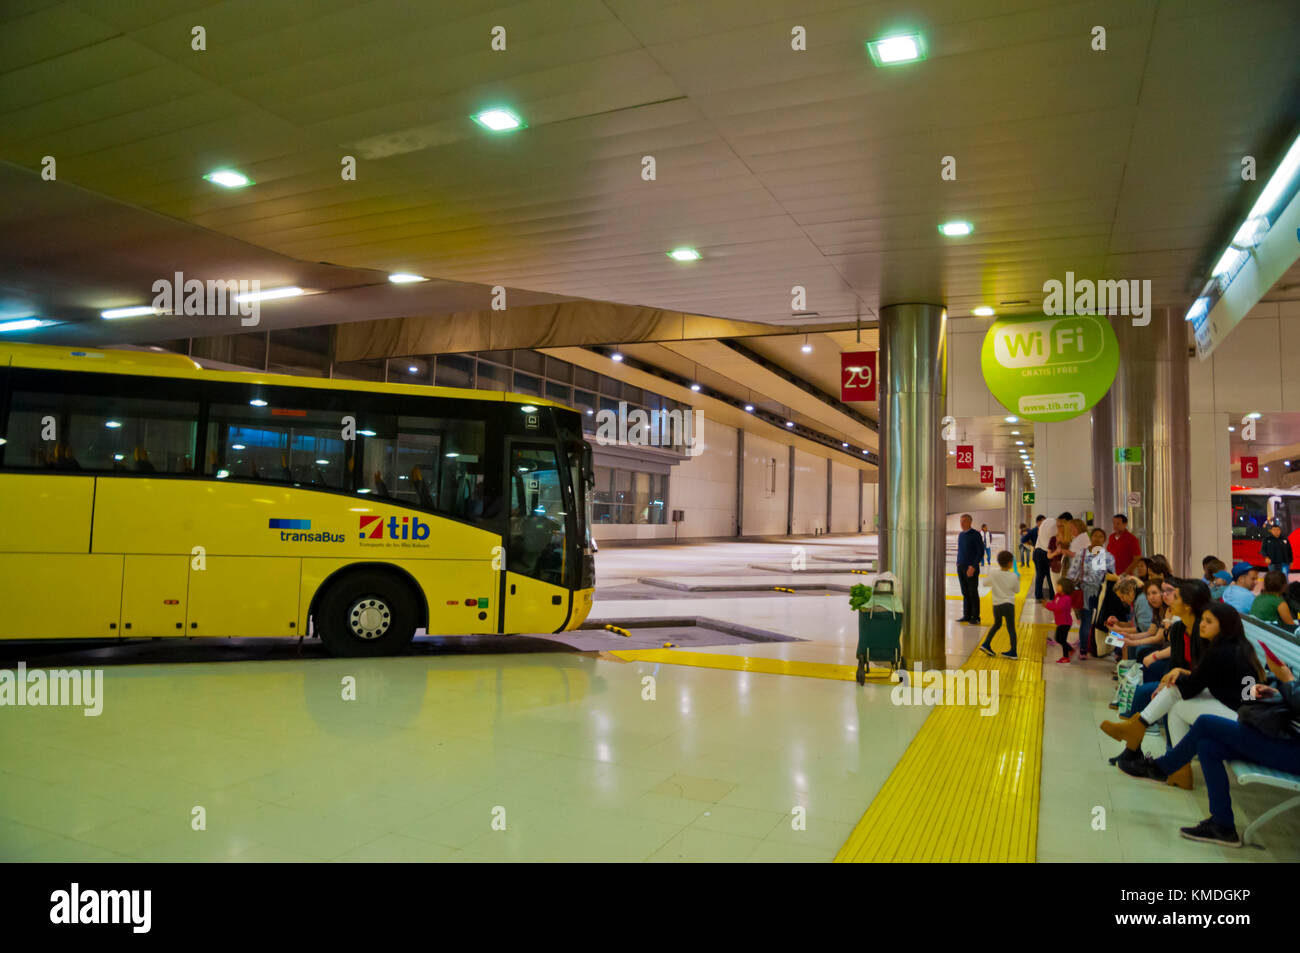 Estacio Intermodal, long distance underground bus station, Palma, Mallorca, Balearic islands, Spain - Stock Image